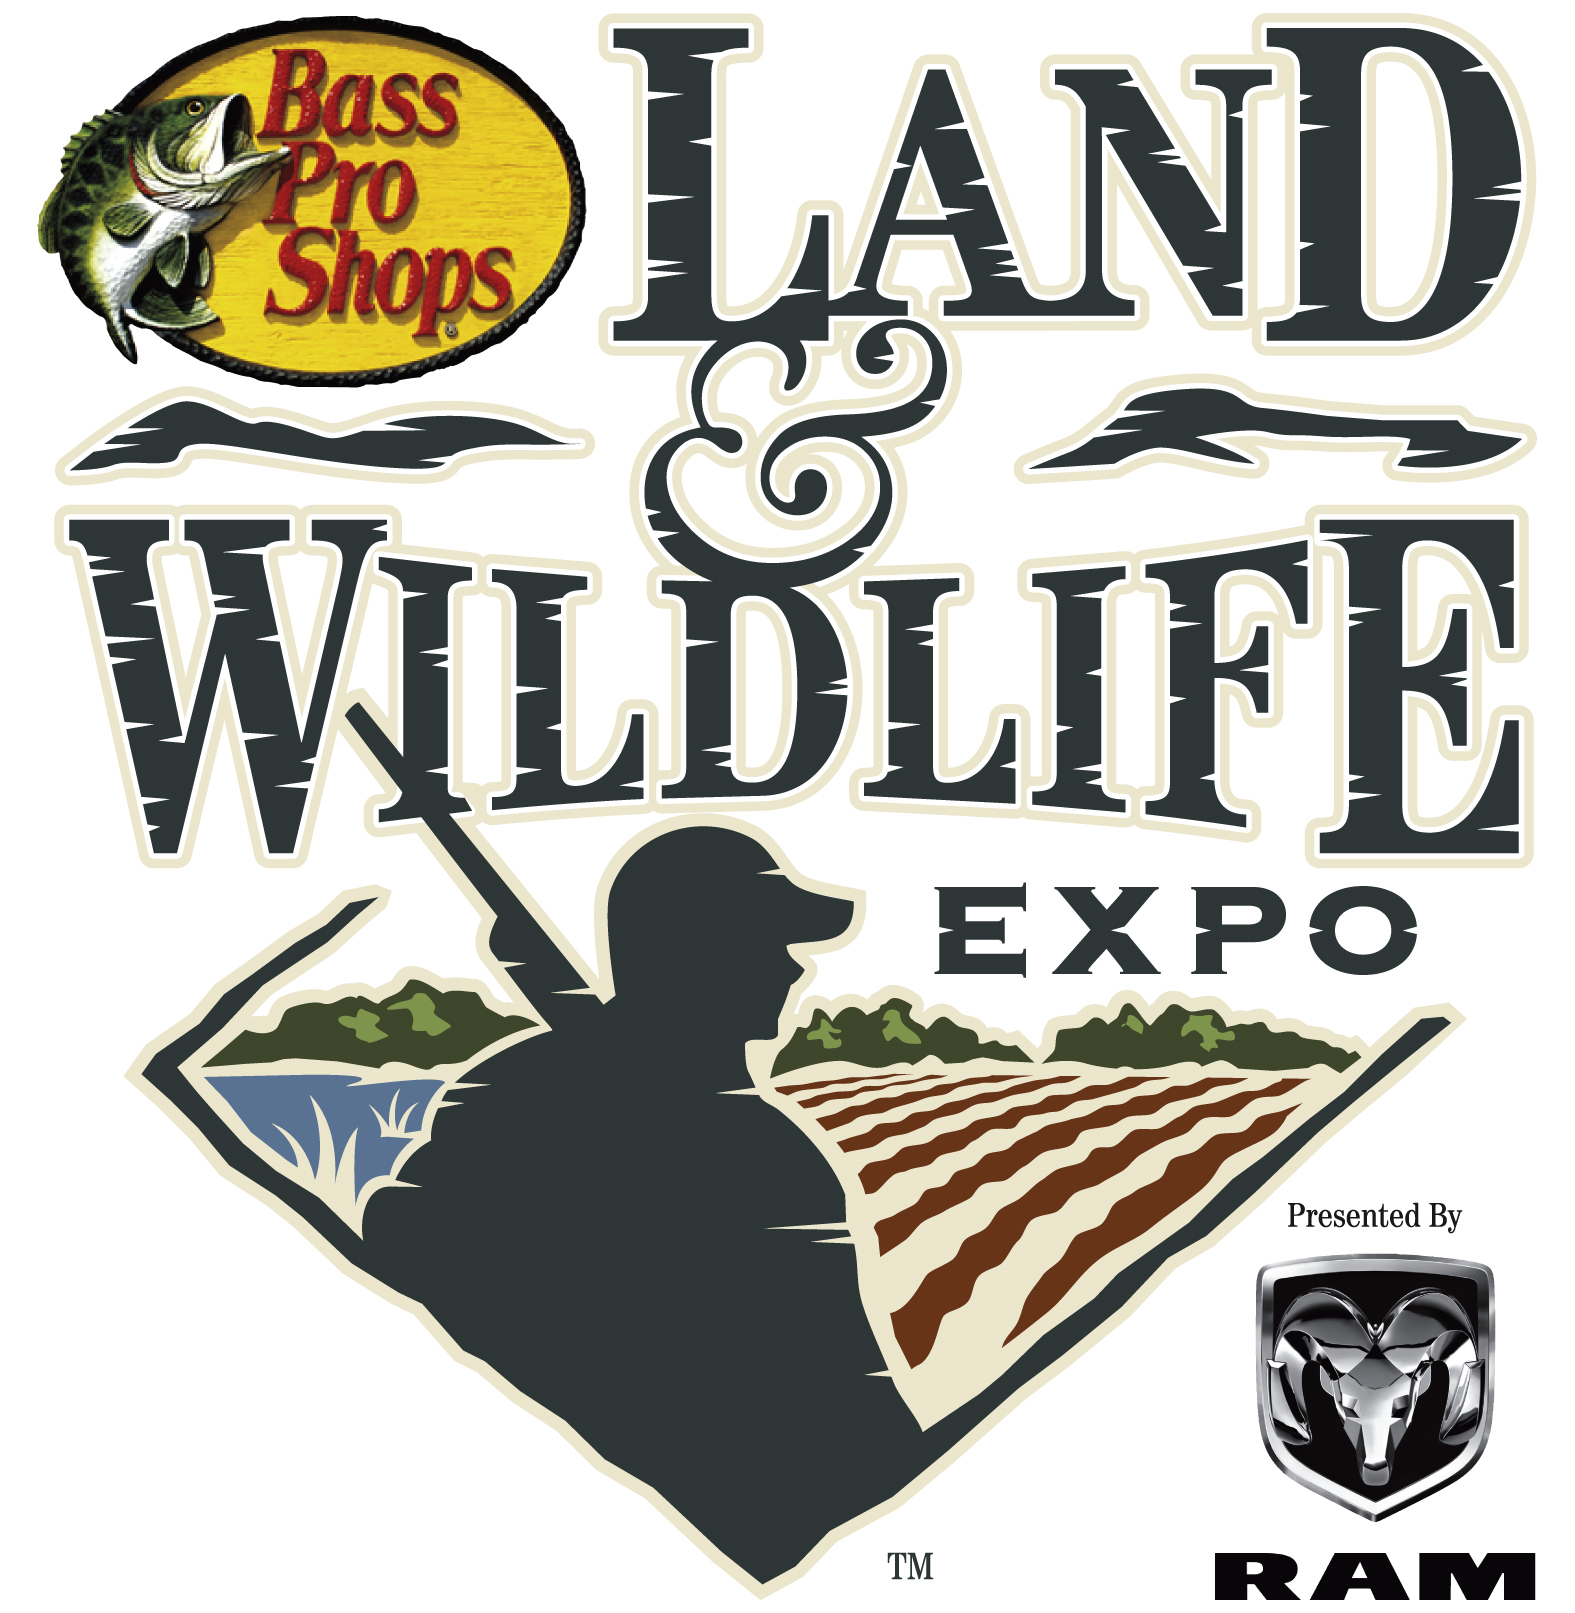 Land & Wildlife Expo Logo